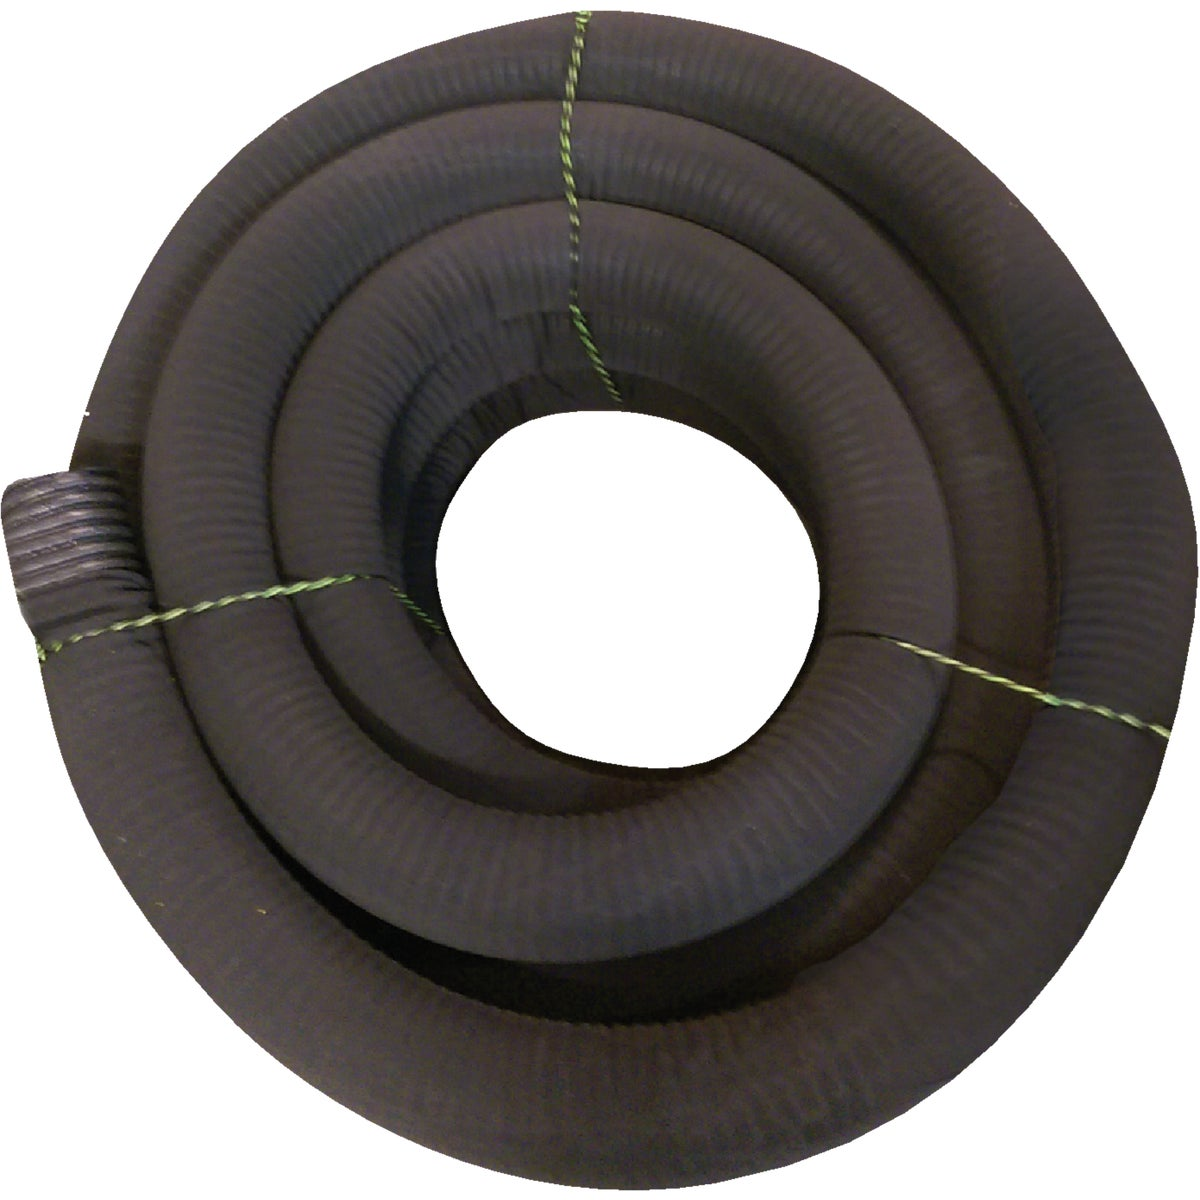 "4""X100' PIPE W/SOCK - 04730100 by Advanced Drainage Sy"